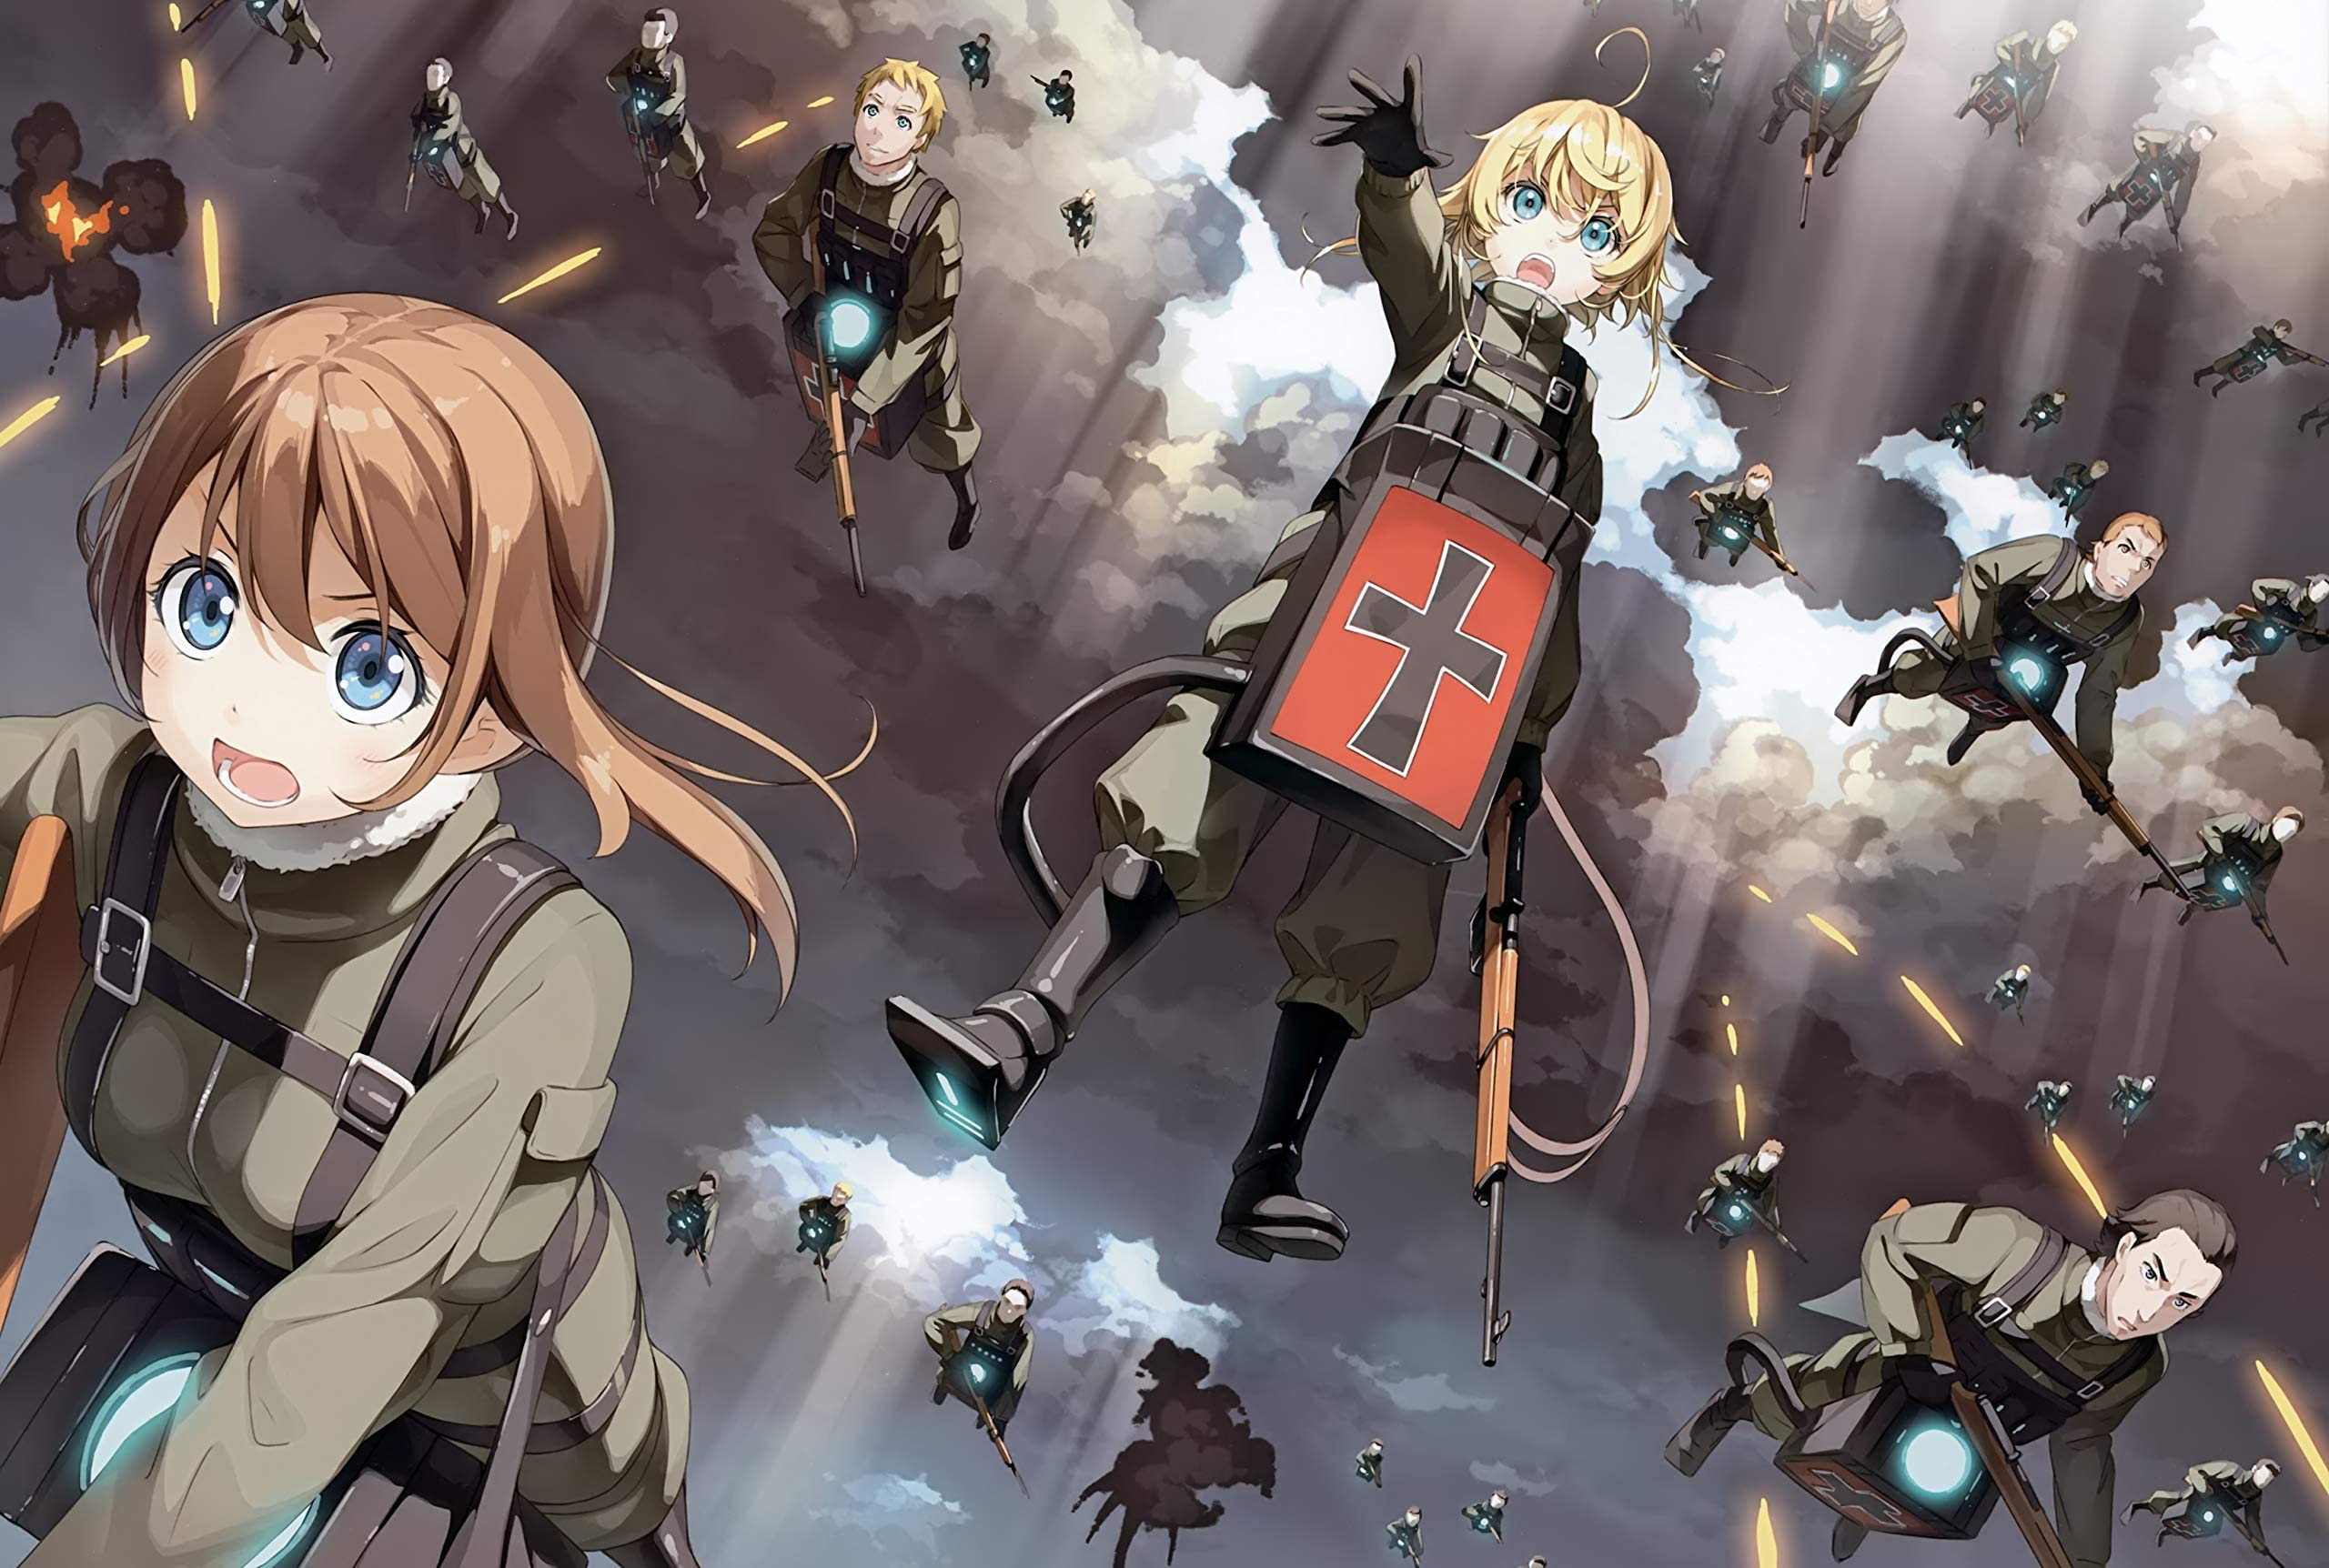 Youjo Senki Season 2 Confirmed: Release Date And Other Details